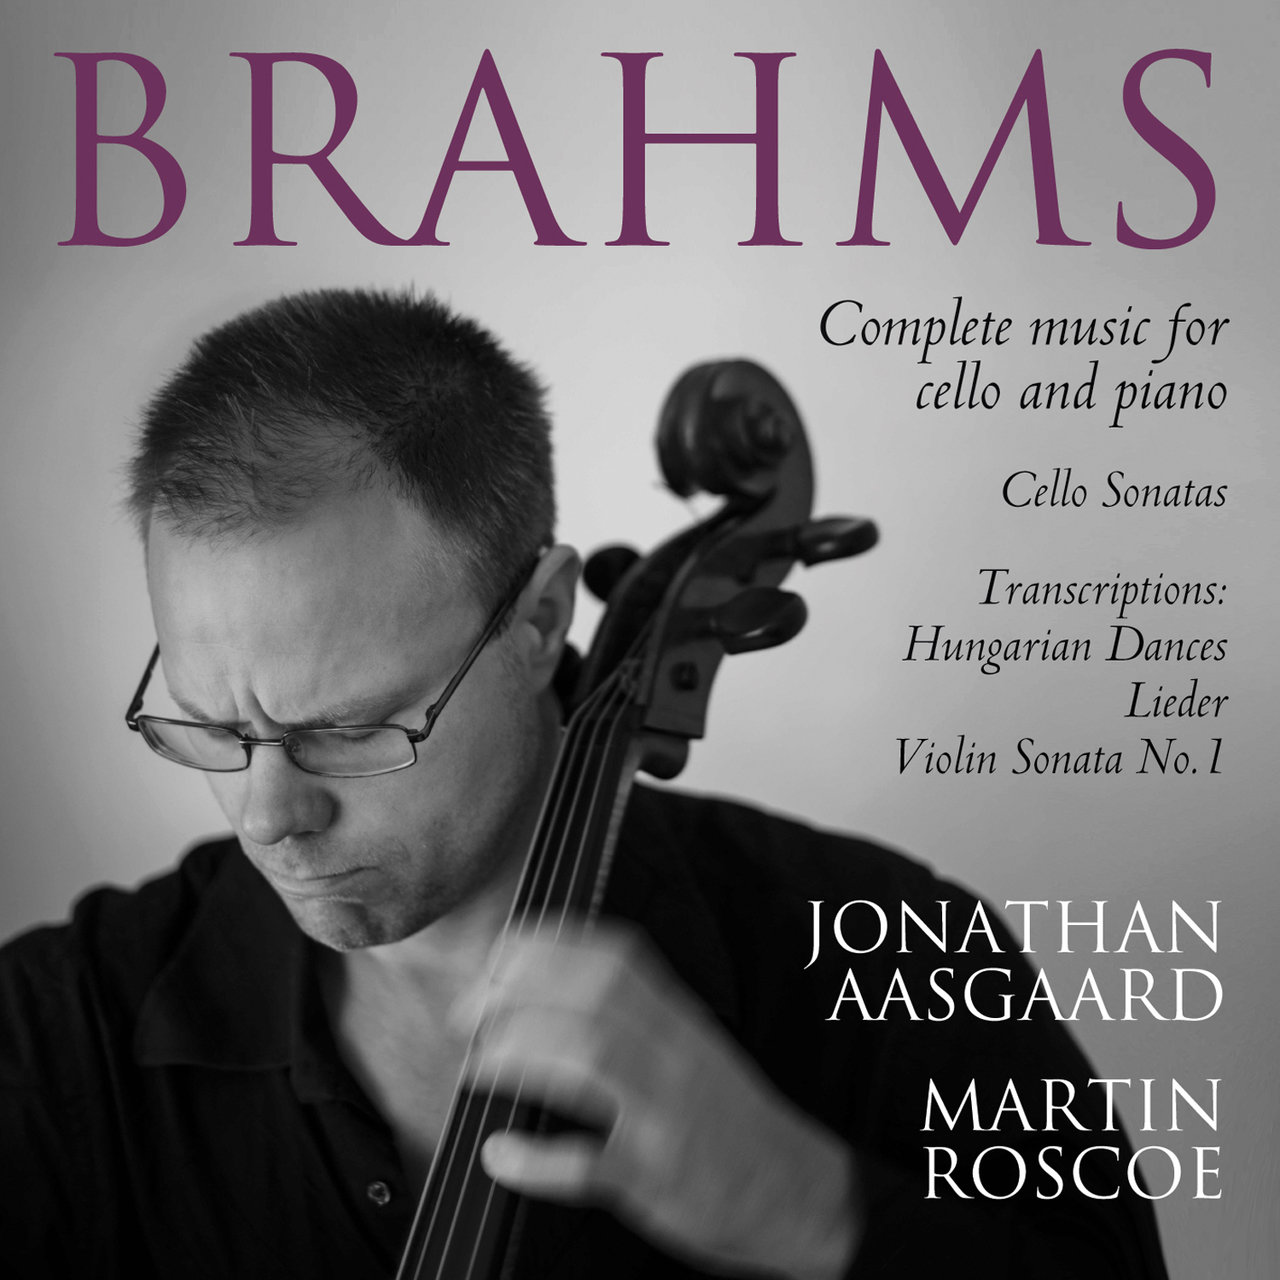 Jonathan Aasgaard, Martin Roscoe - Brahms: Complete Music for Cello and Piano (2014)